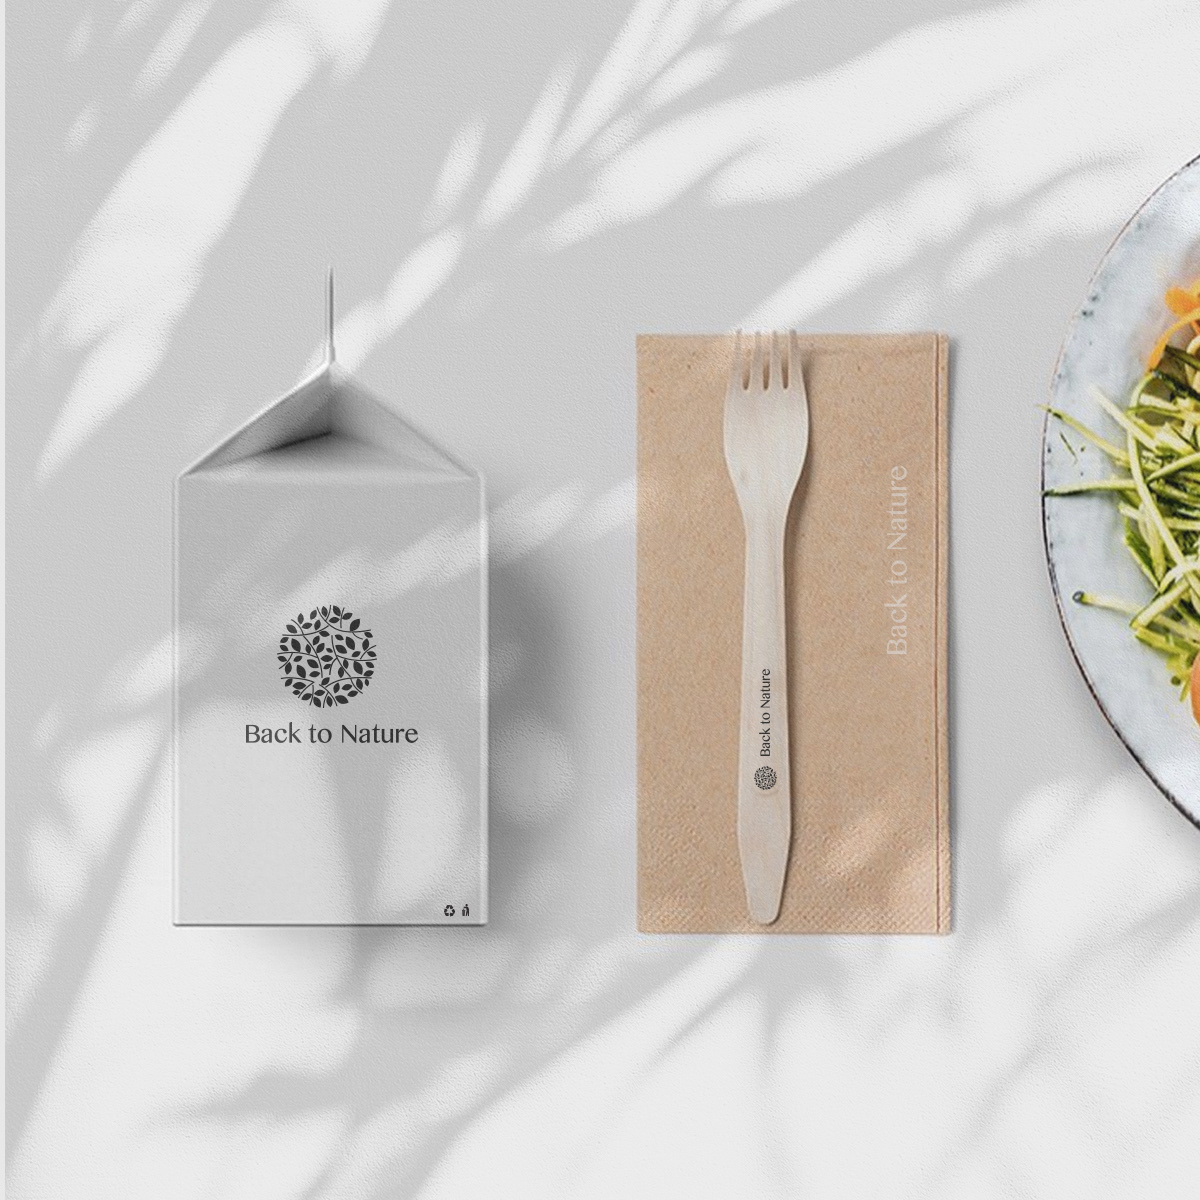 Brand experience design for back to nature